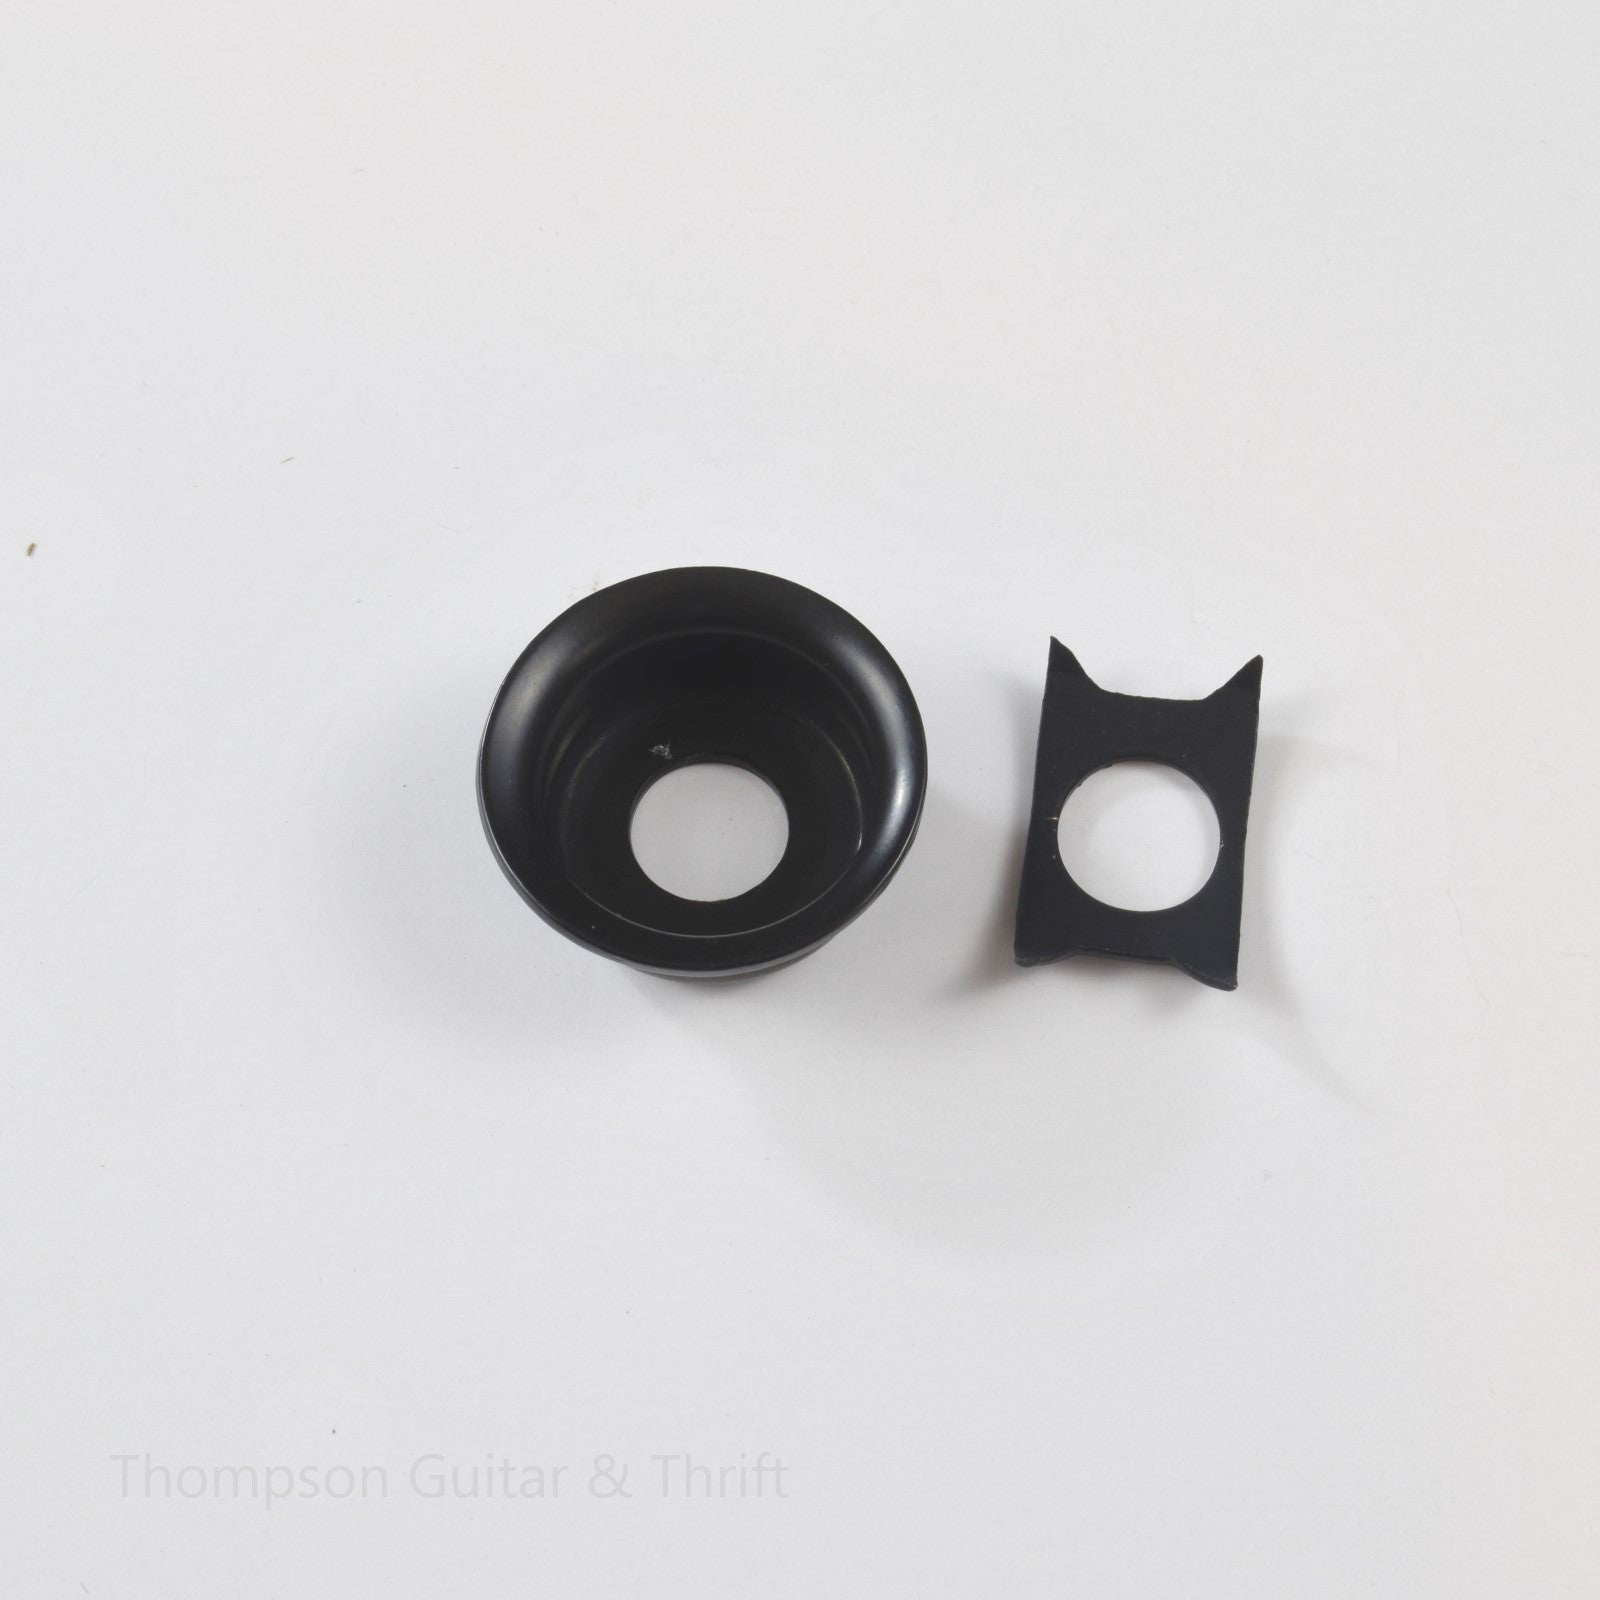 Black Telecaster Style Round Cup Jack Plate w/Retainer Clip